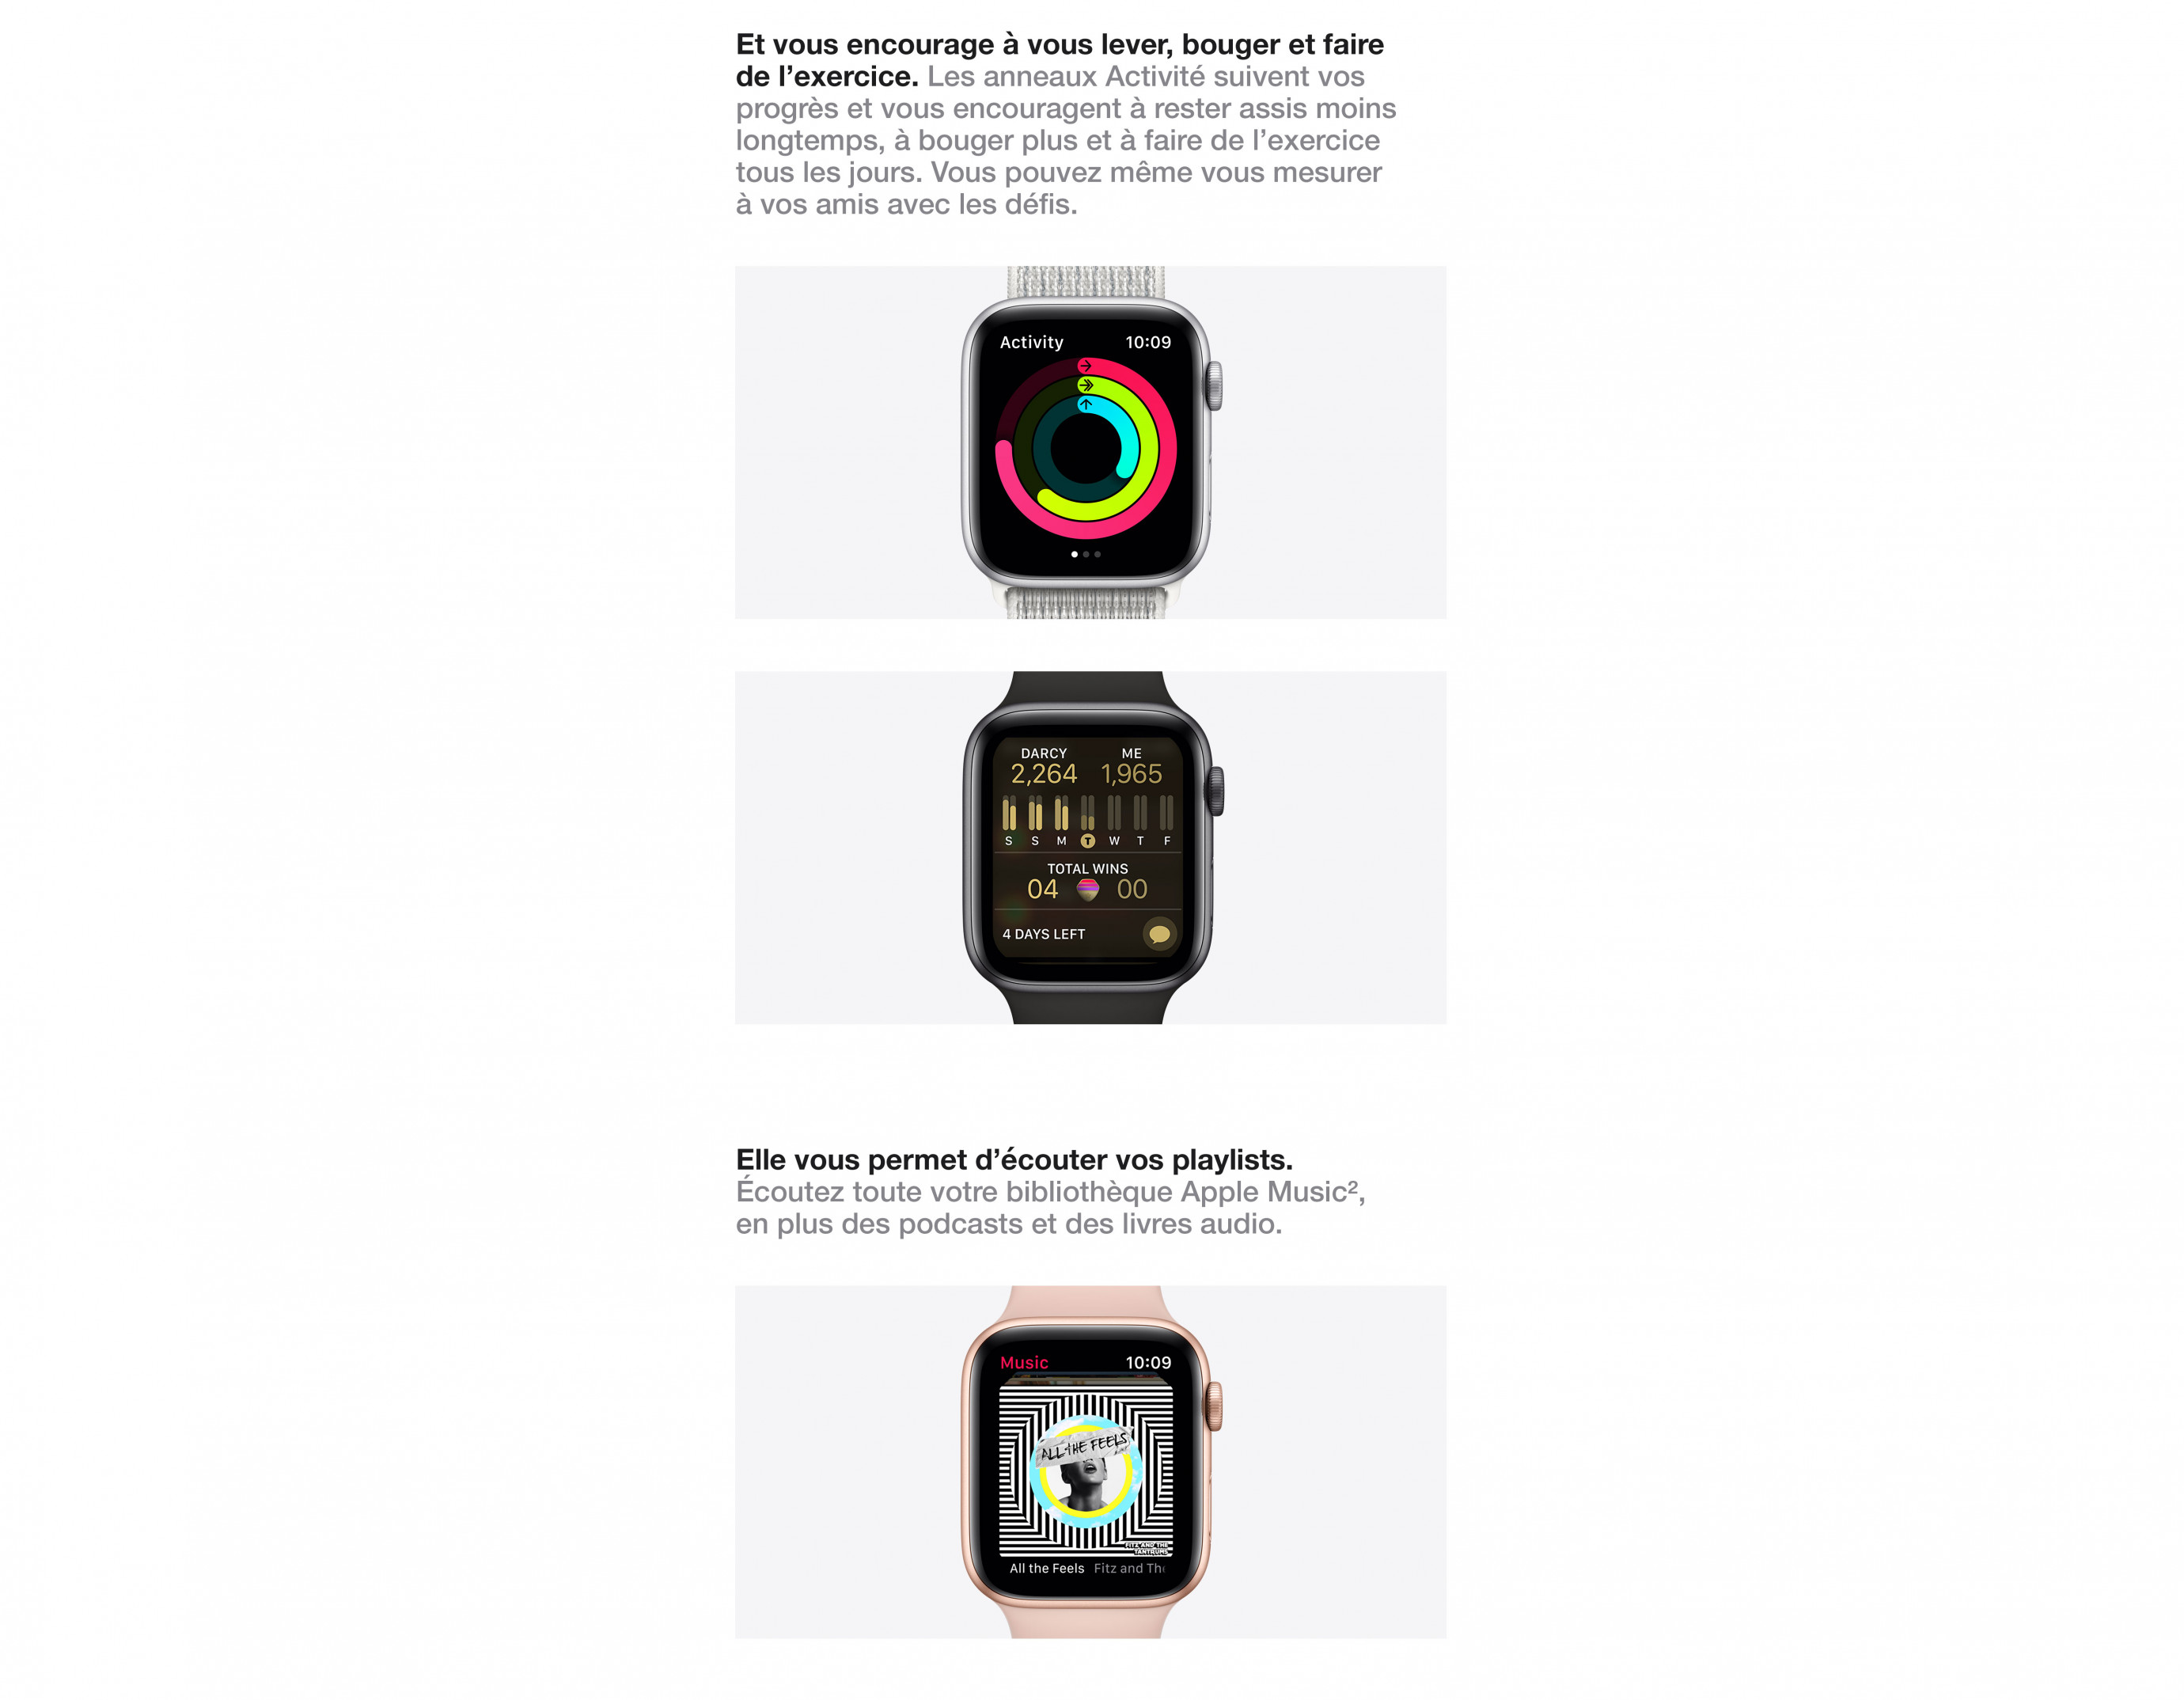 AppleWatchSeries5-productpage_fr_05.jpg